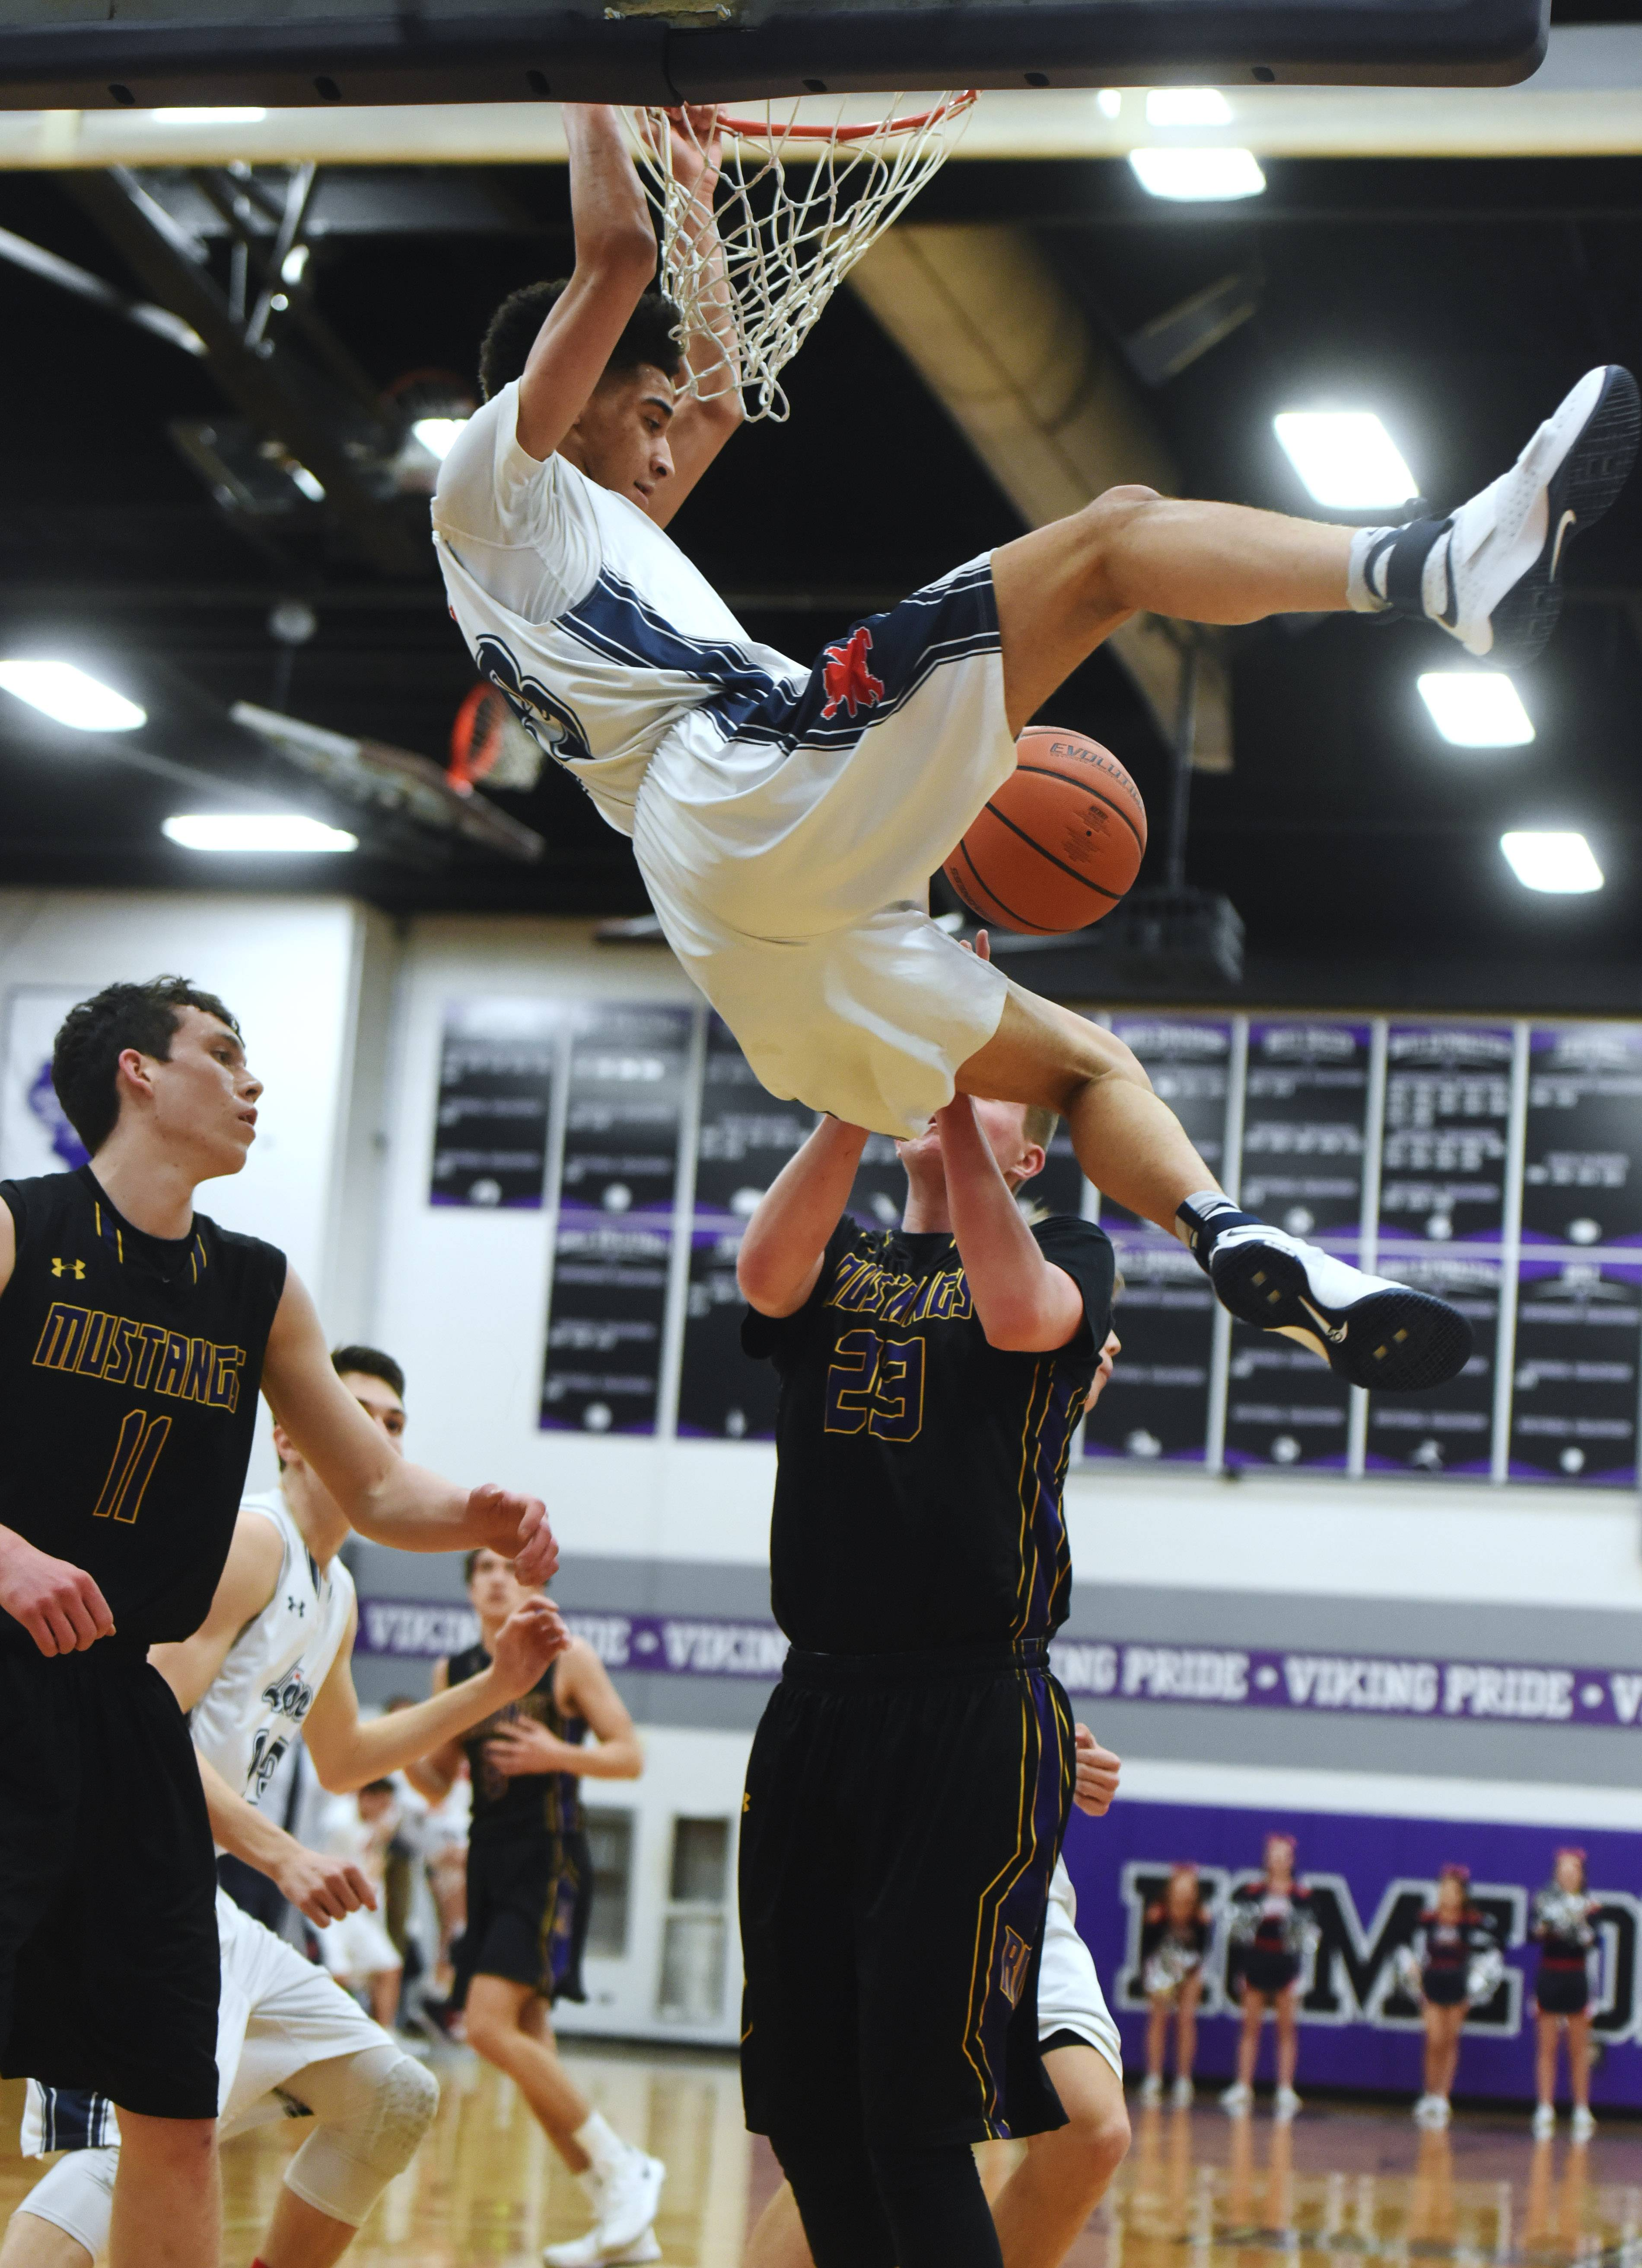 St. Viator's Jeremiah Hernandez dunks in front of Rolling Meadows' Ryan Carney, left, and Joe Coen during regional semifinal play at Niles North in Skokie on Wednesday.